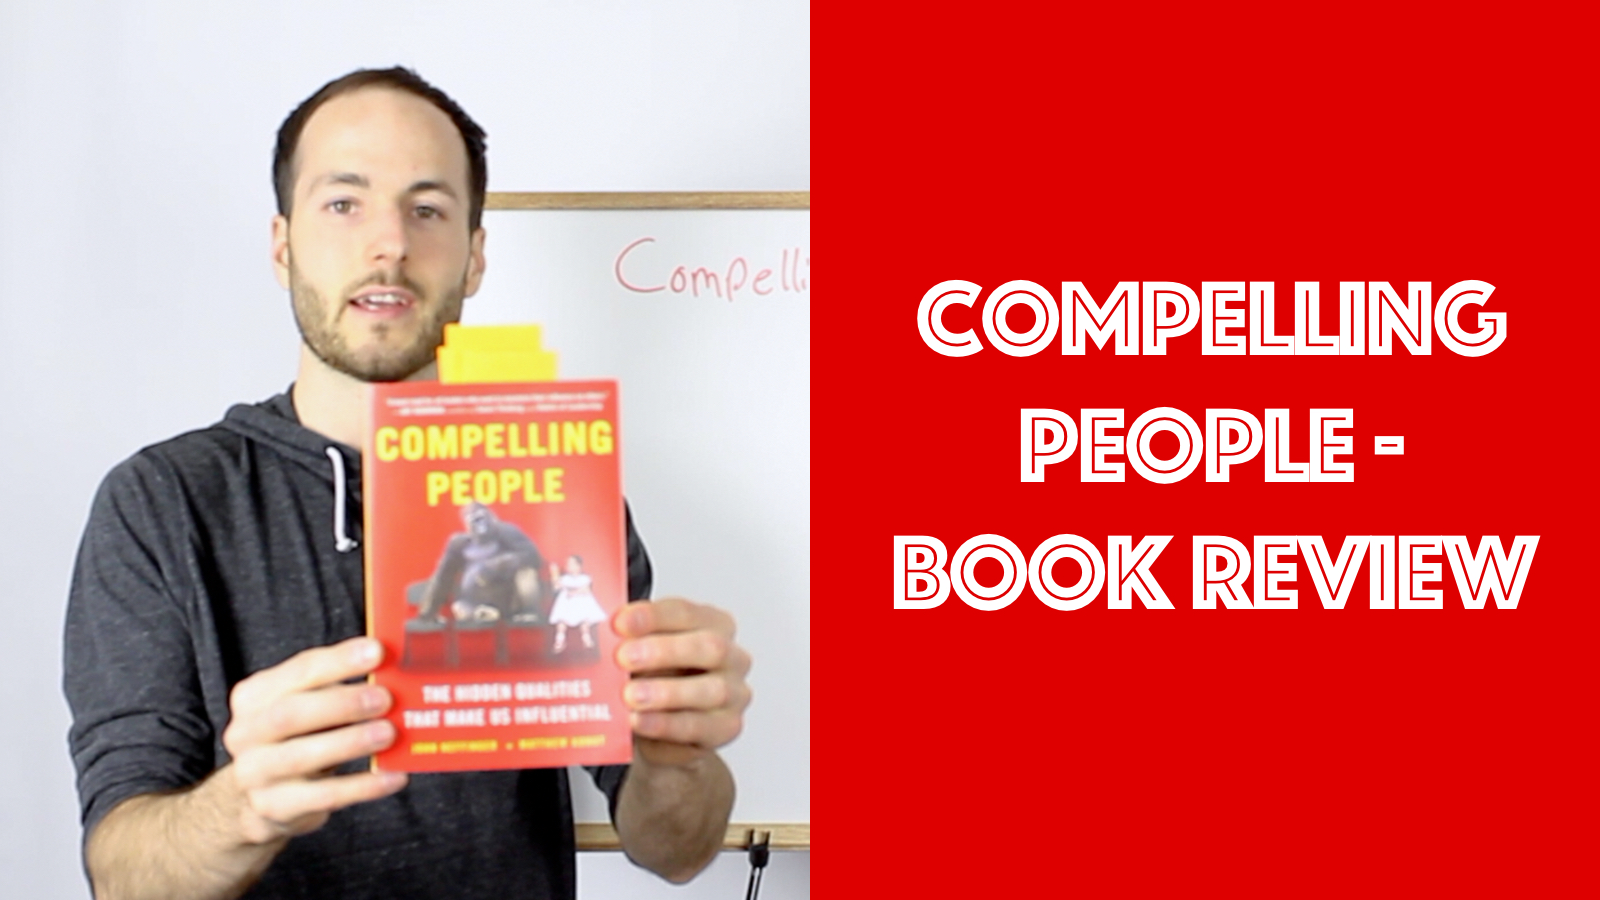 How To Attract People – Compelling People [Book Review]